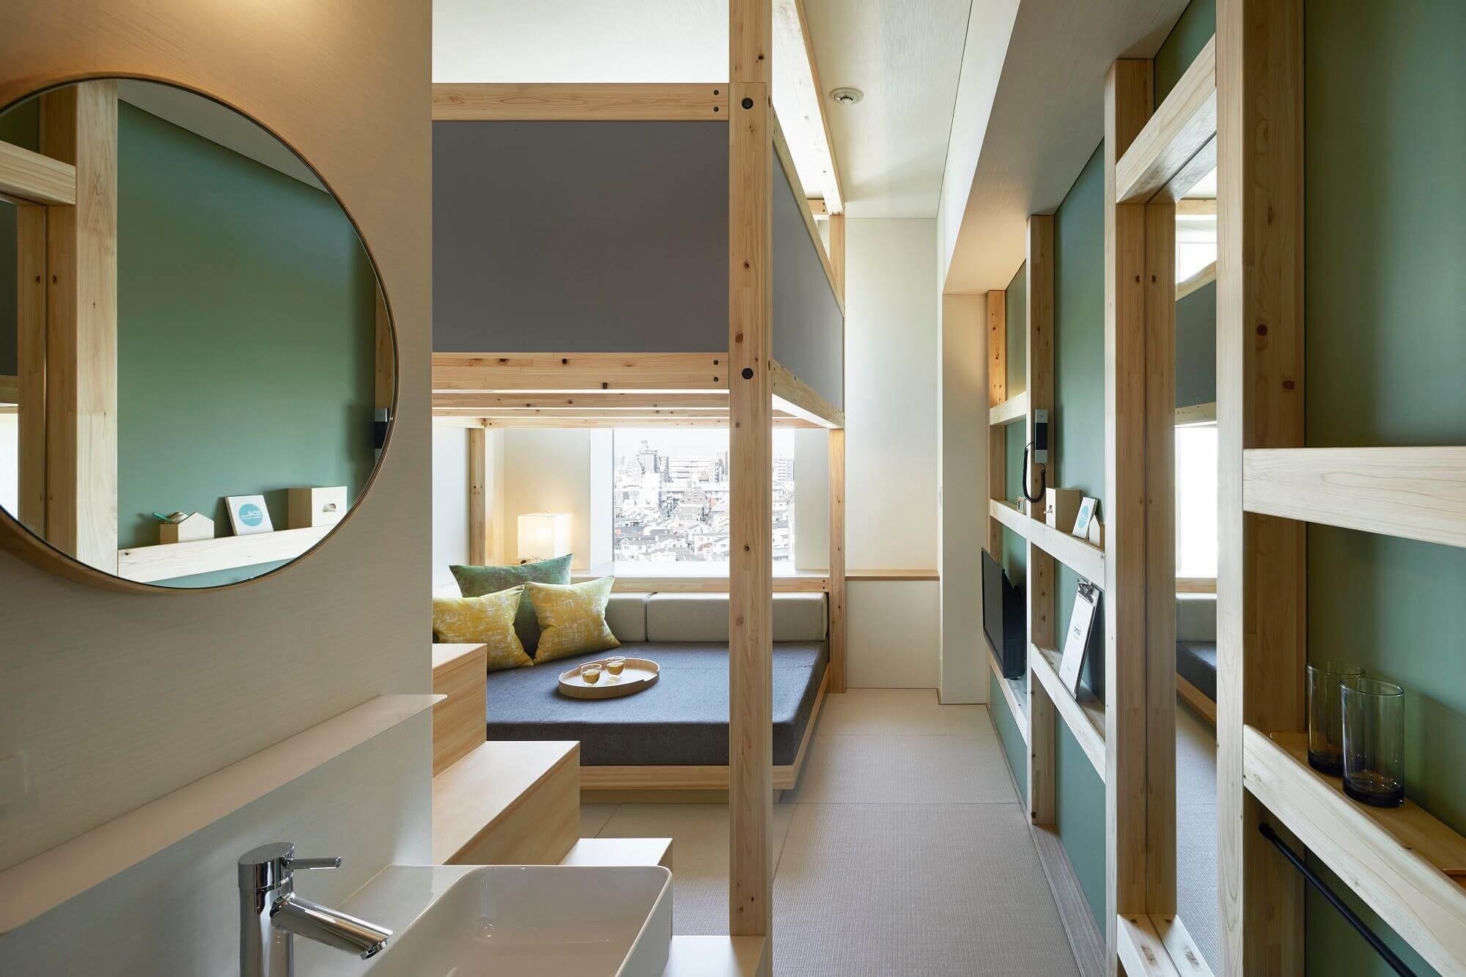 We stayed at the OMO5 Otsukain rooms with lounge areas tucked below elevated beds that felt like indoor treehouses (in a good way). The designers used the side wall to create hanging storage (in lieu of closets) and shallow shelving that I hugely admired. We hope to return.